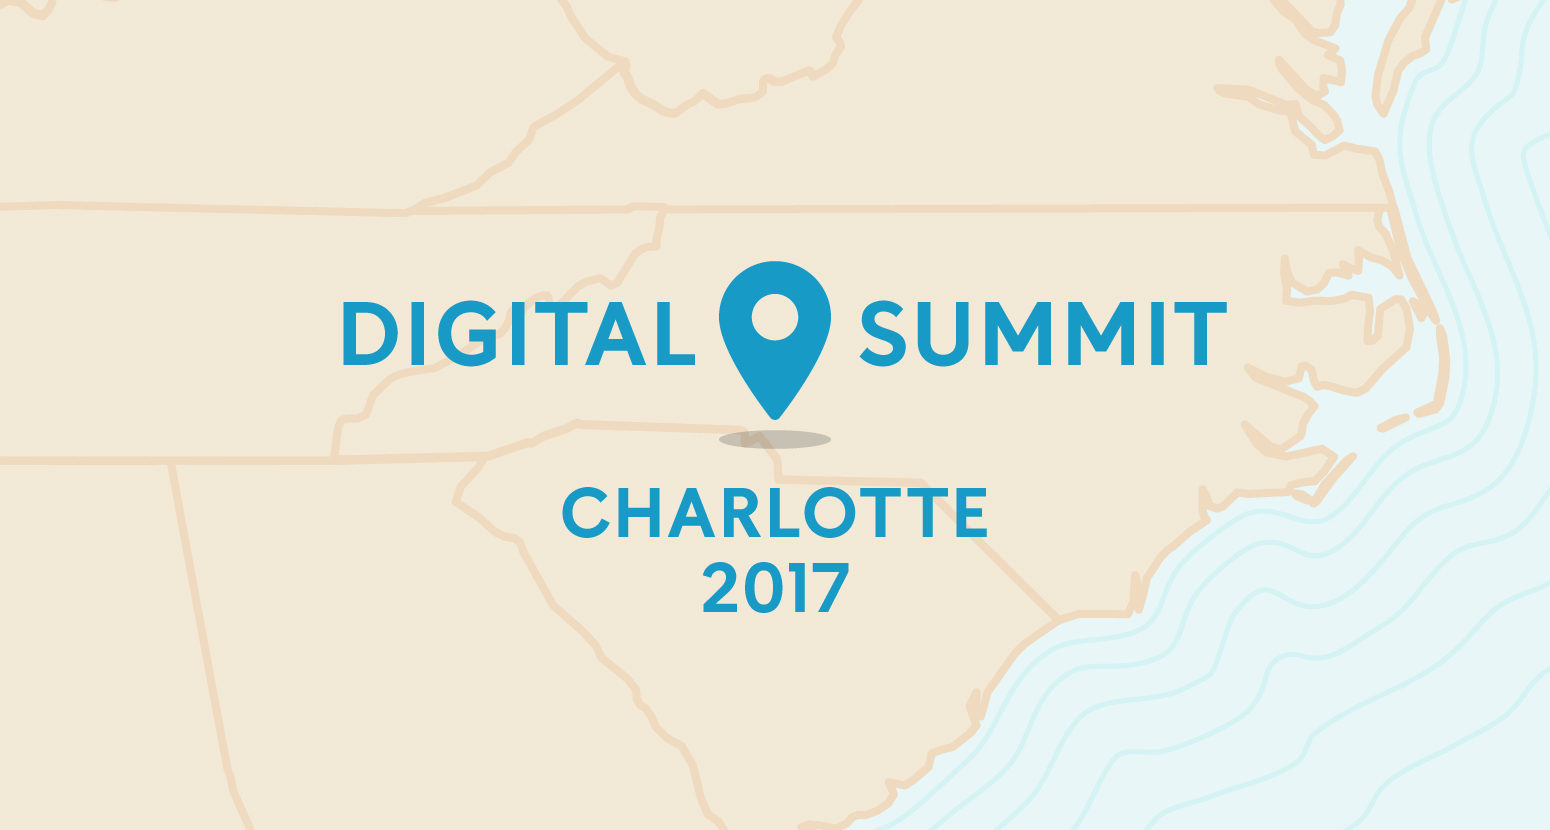 Digital Summit Charlotte 2017